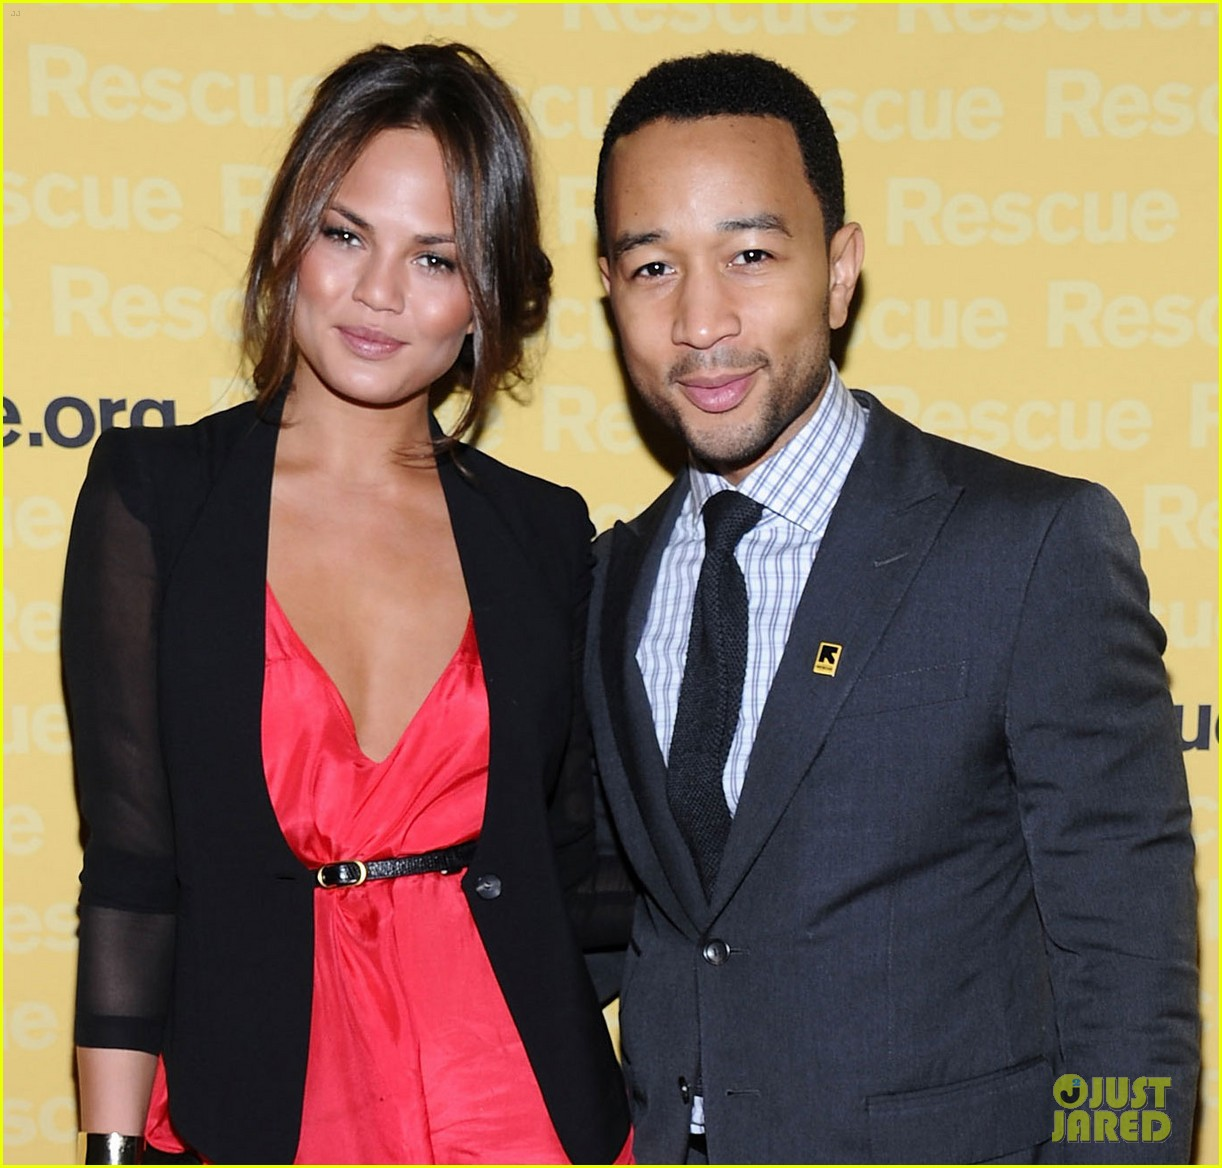 chrissy teigen john legend international rescue committee freedom award 082599027